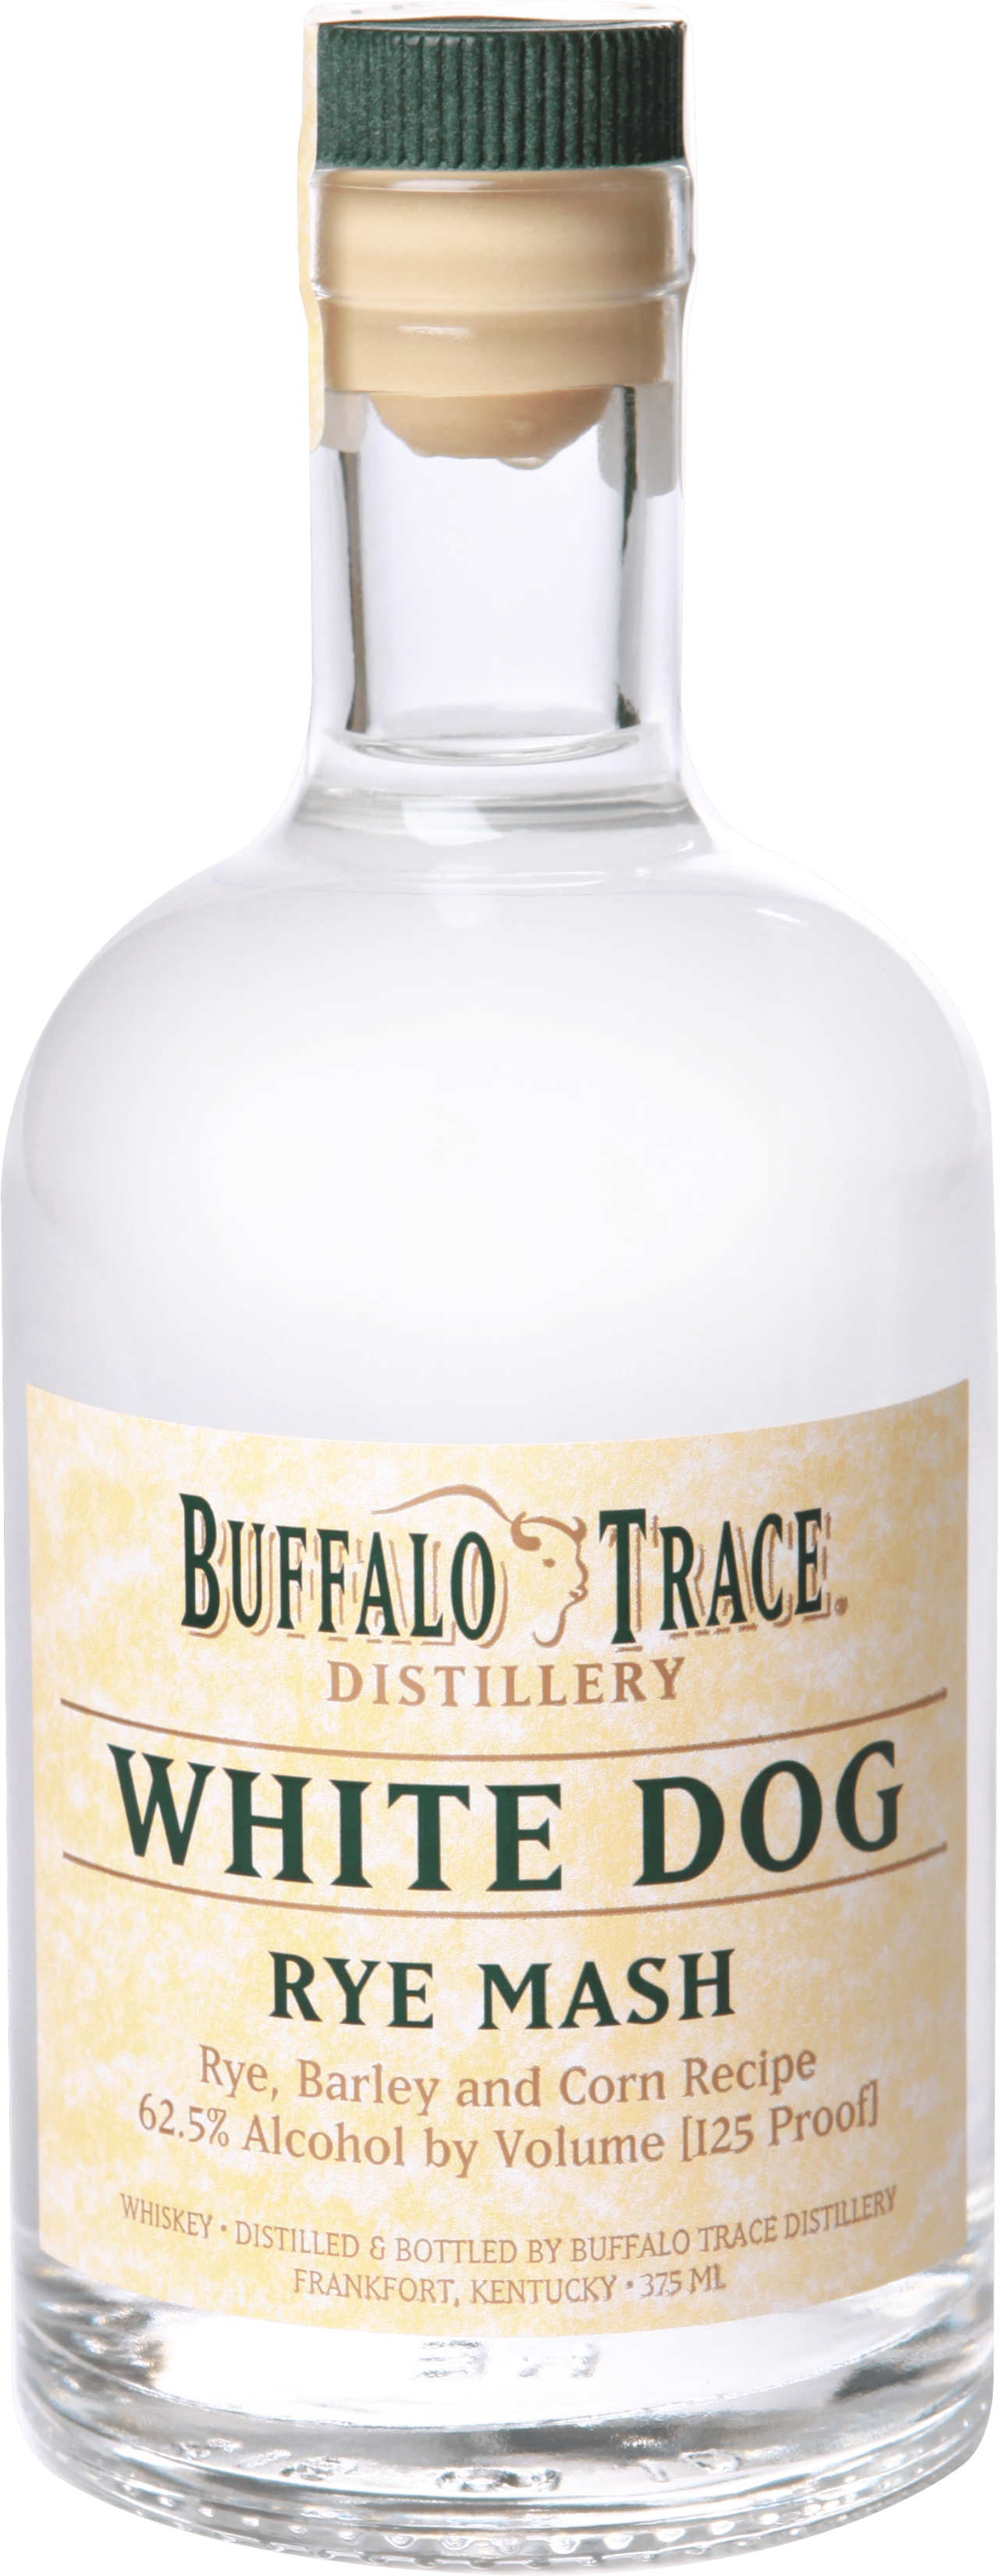 A 1 liter bottle of Buffalo Trace Kentucky Straight Bourbon Whiskey